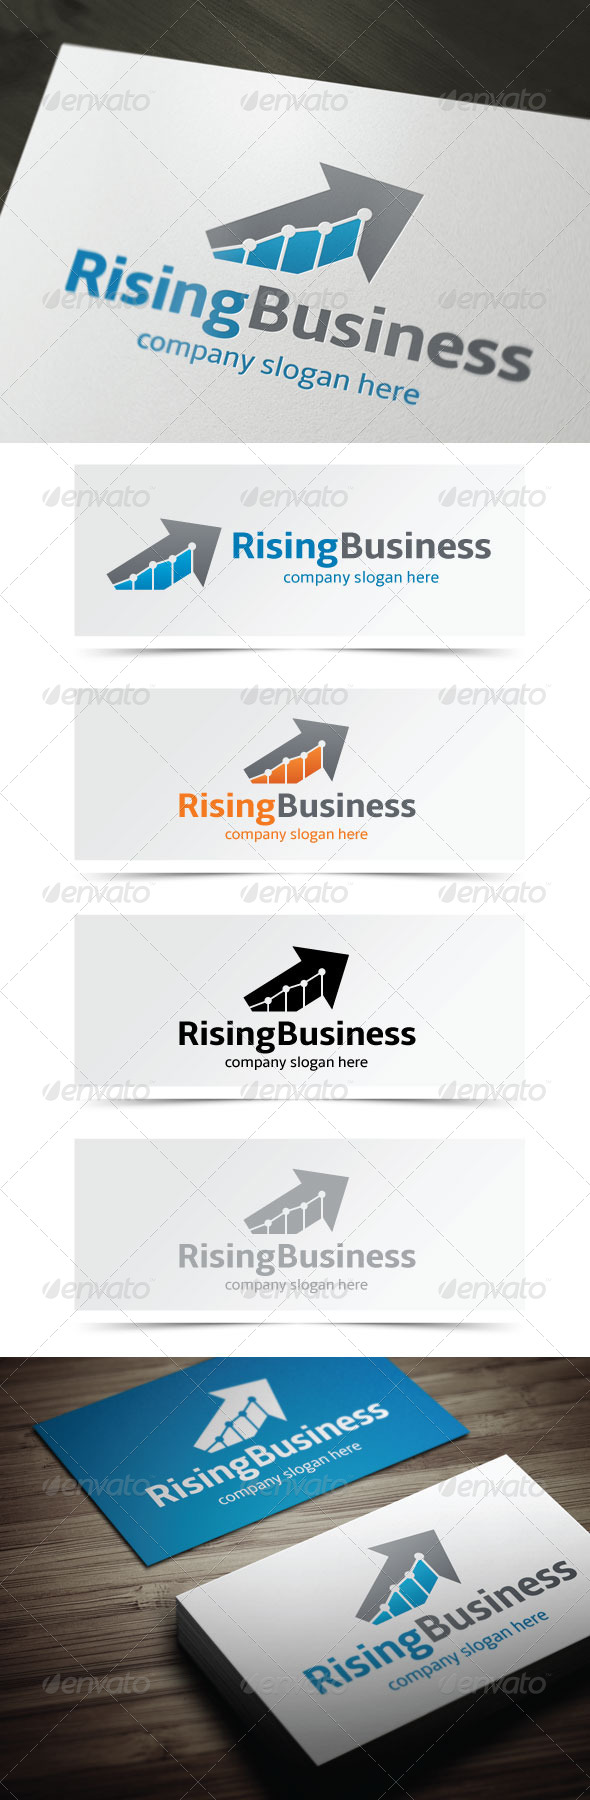 GraphicRiver Rising Business 5302880